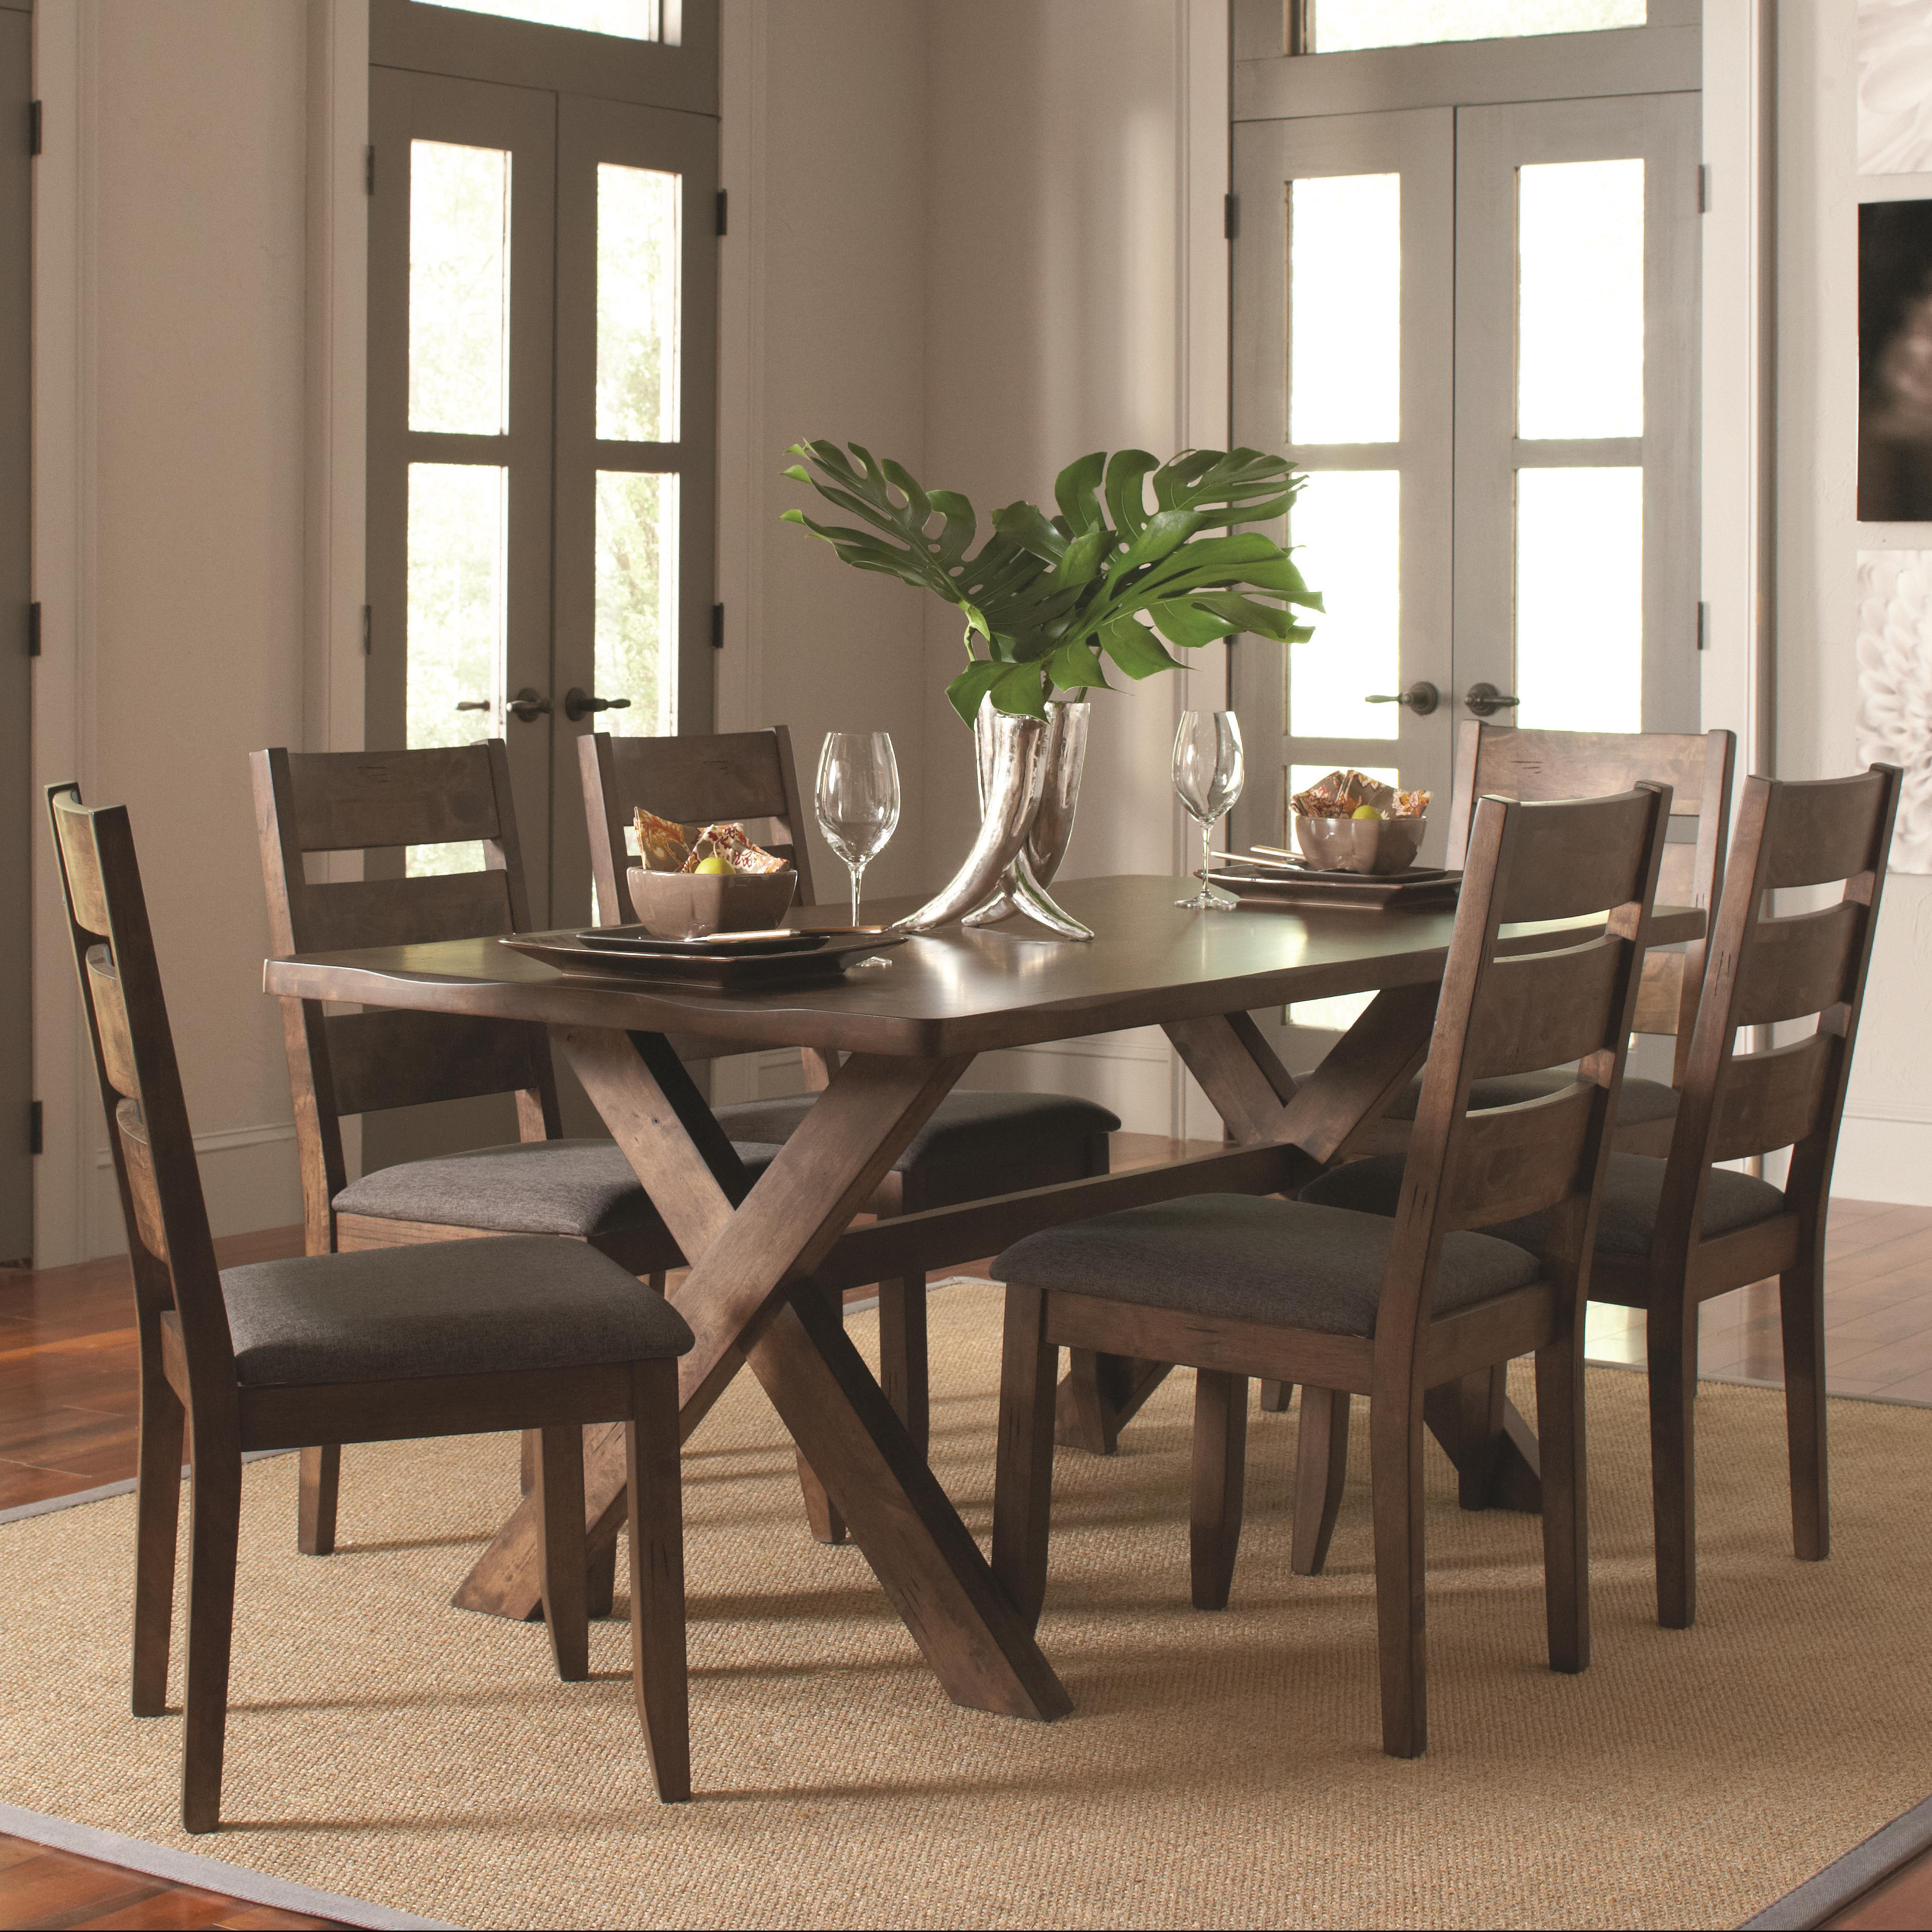 Alston 7 Pc Table & Chair Set by Coaster at Lapeer Furniture & Mattress Center